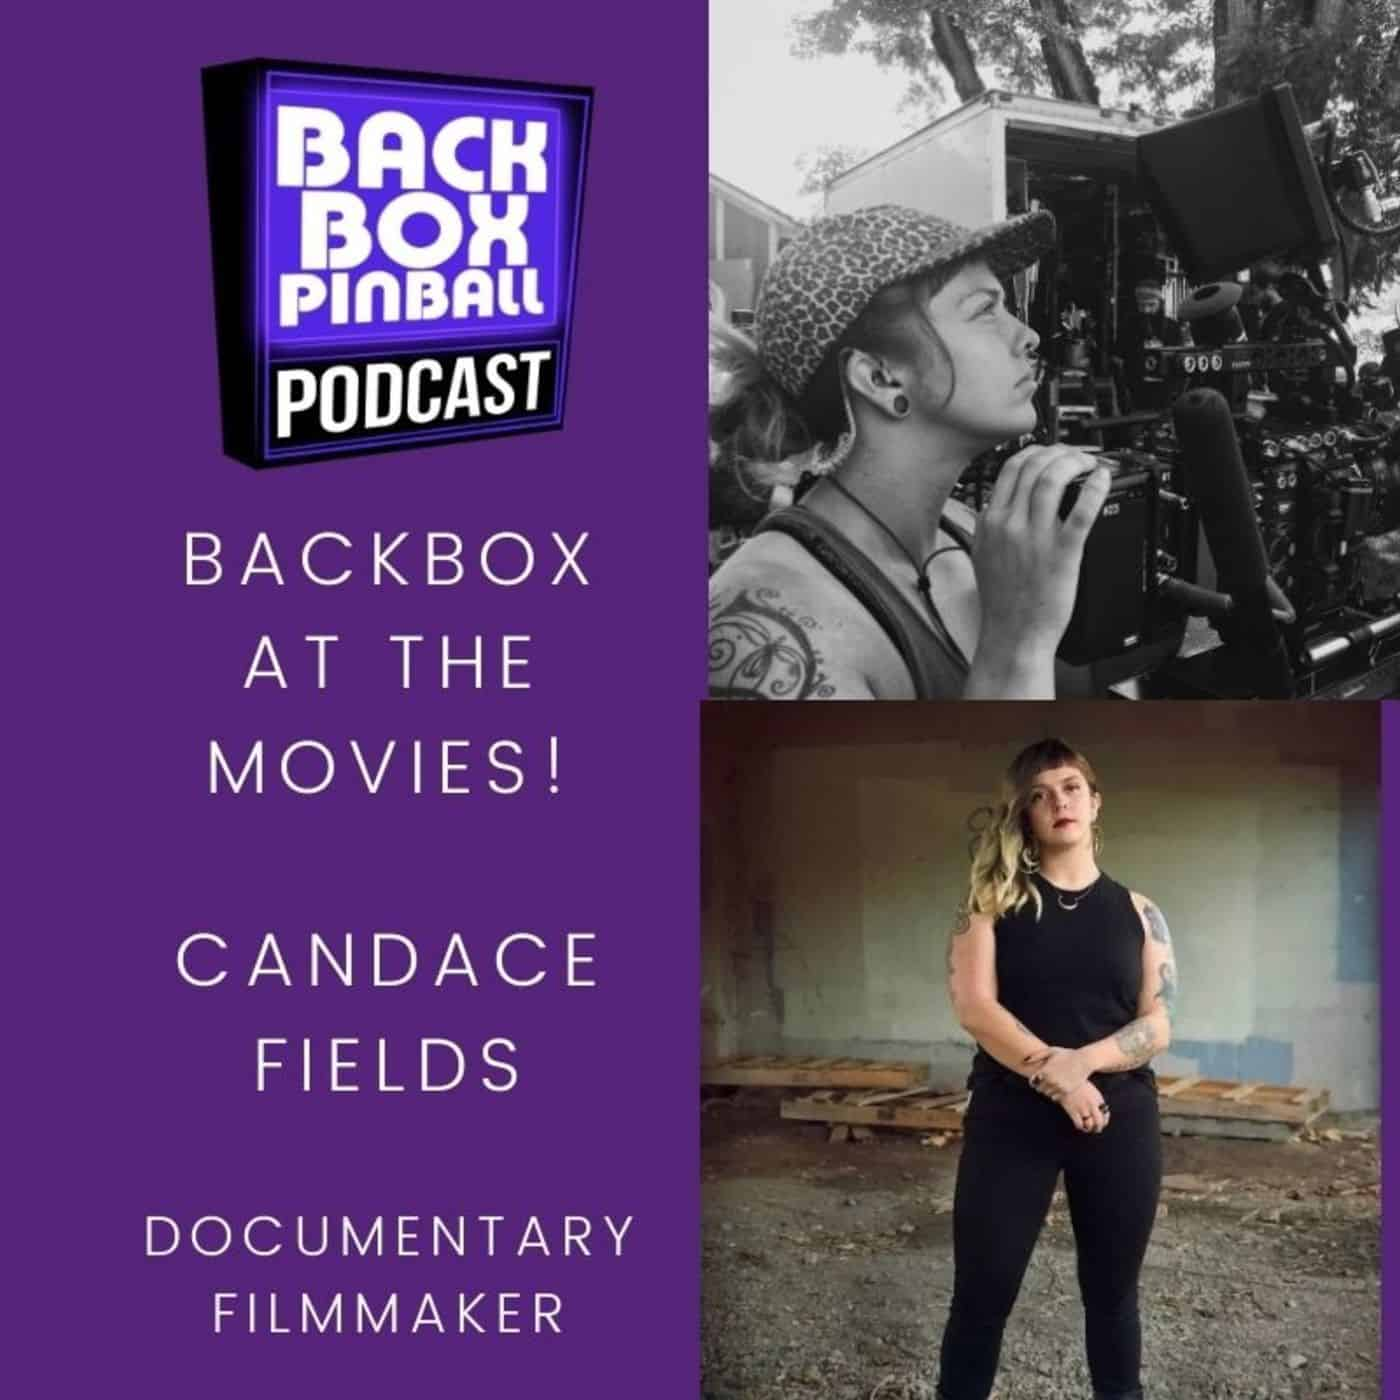 Backbox Pinball Podcast: Candace Fields